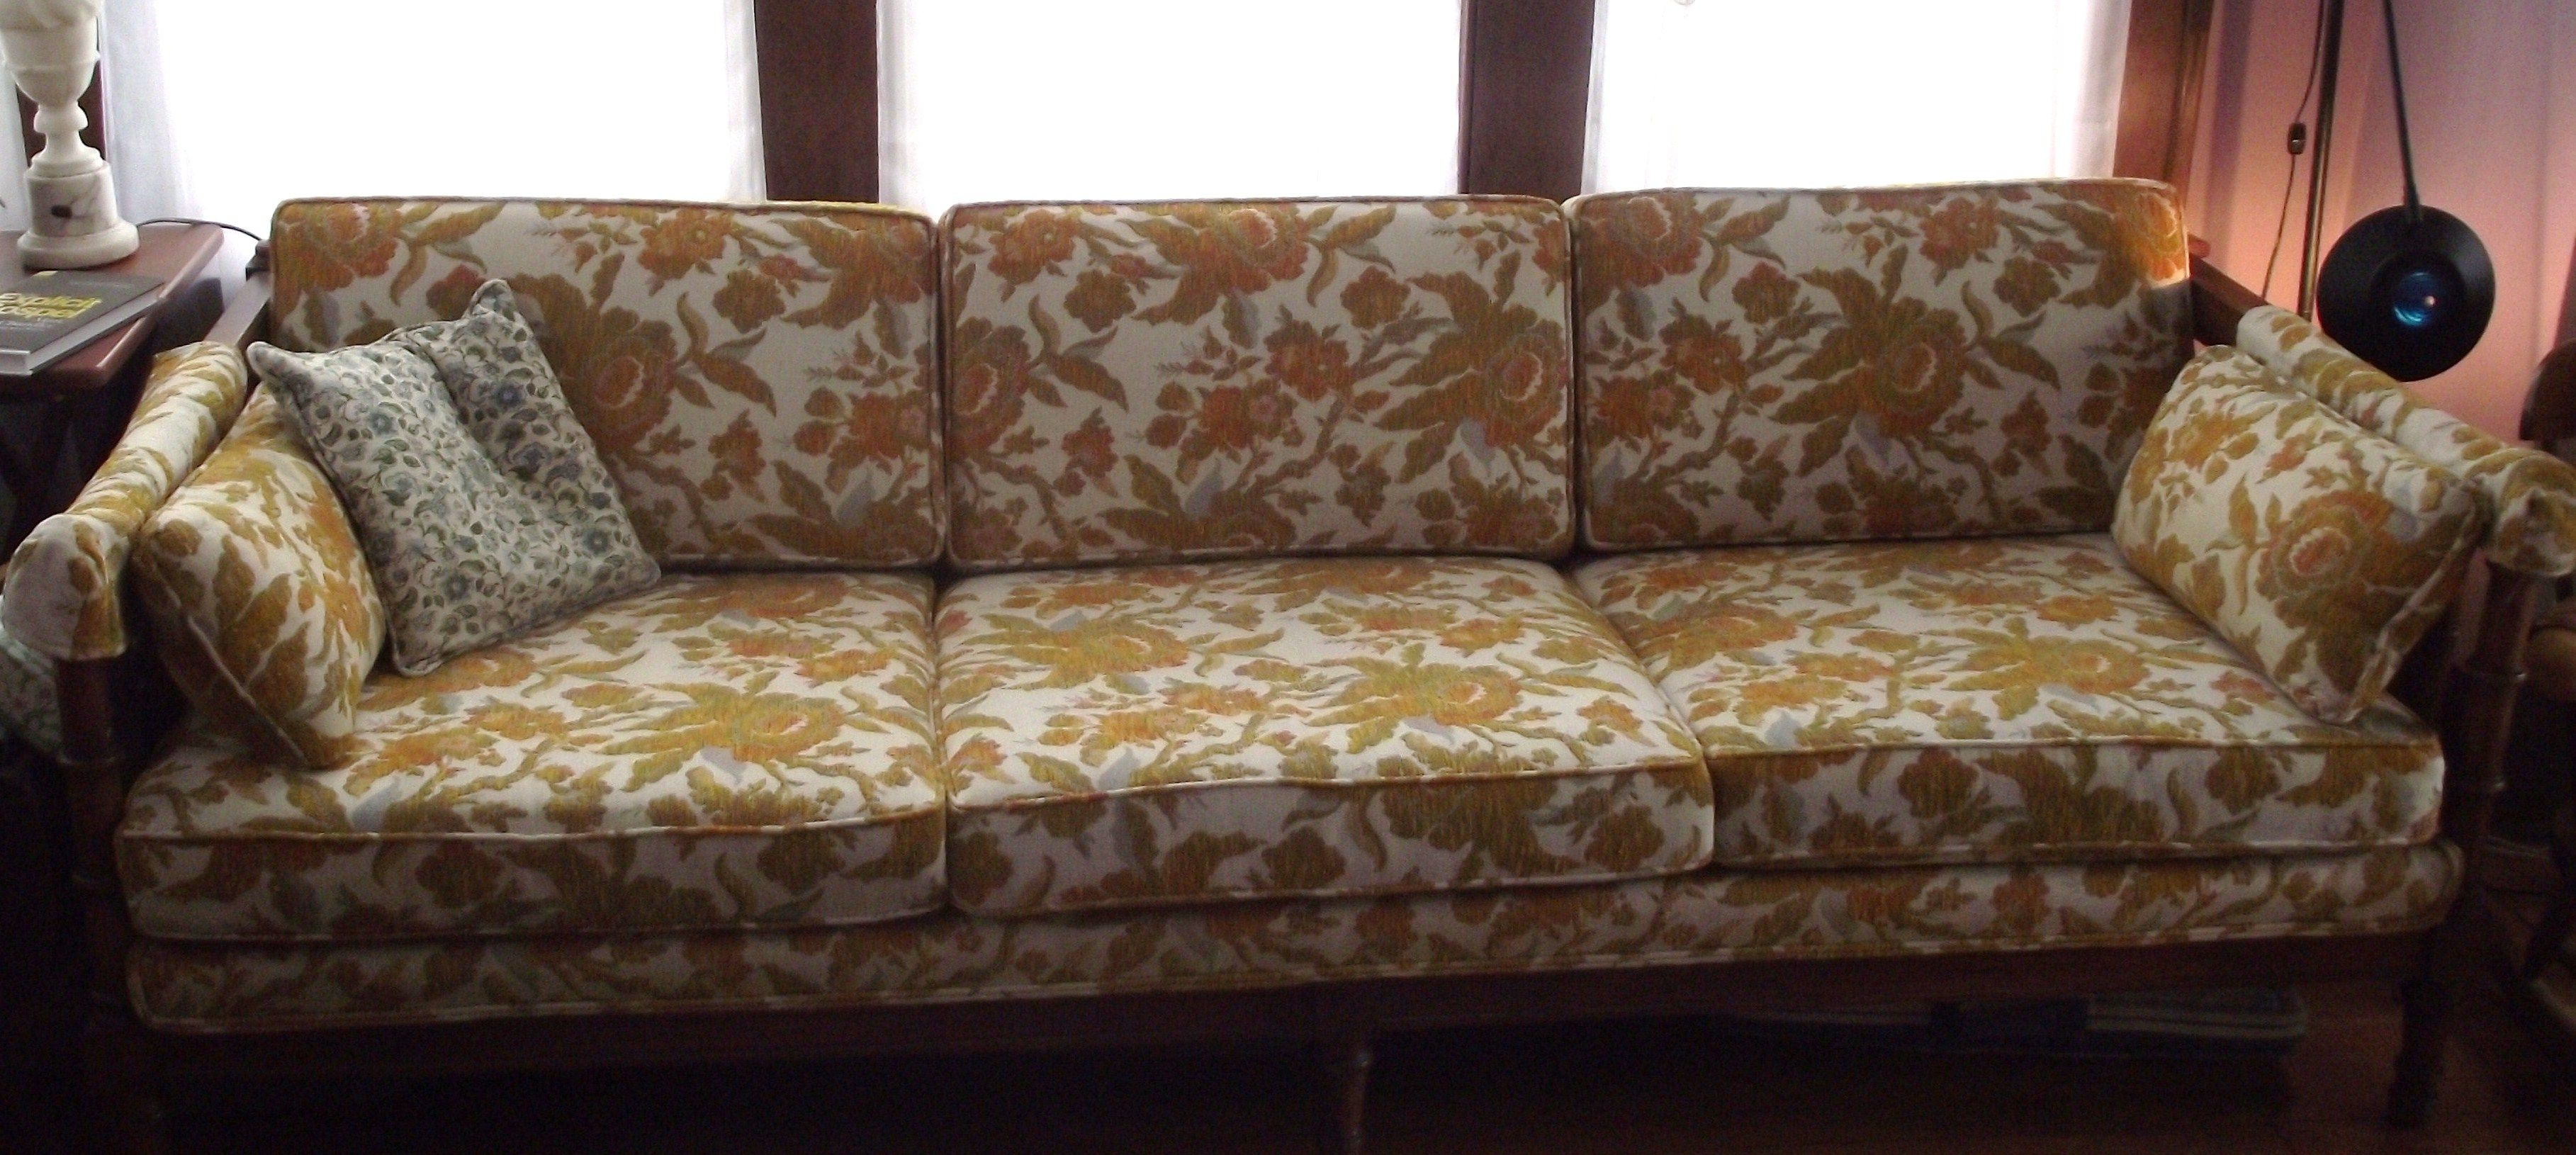 Tremendous Golden Yellow Floral Print Couch Low Profile And Wood Dailytribune Chair Design For Home Dailytribuneorg